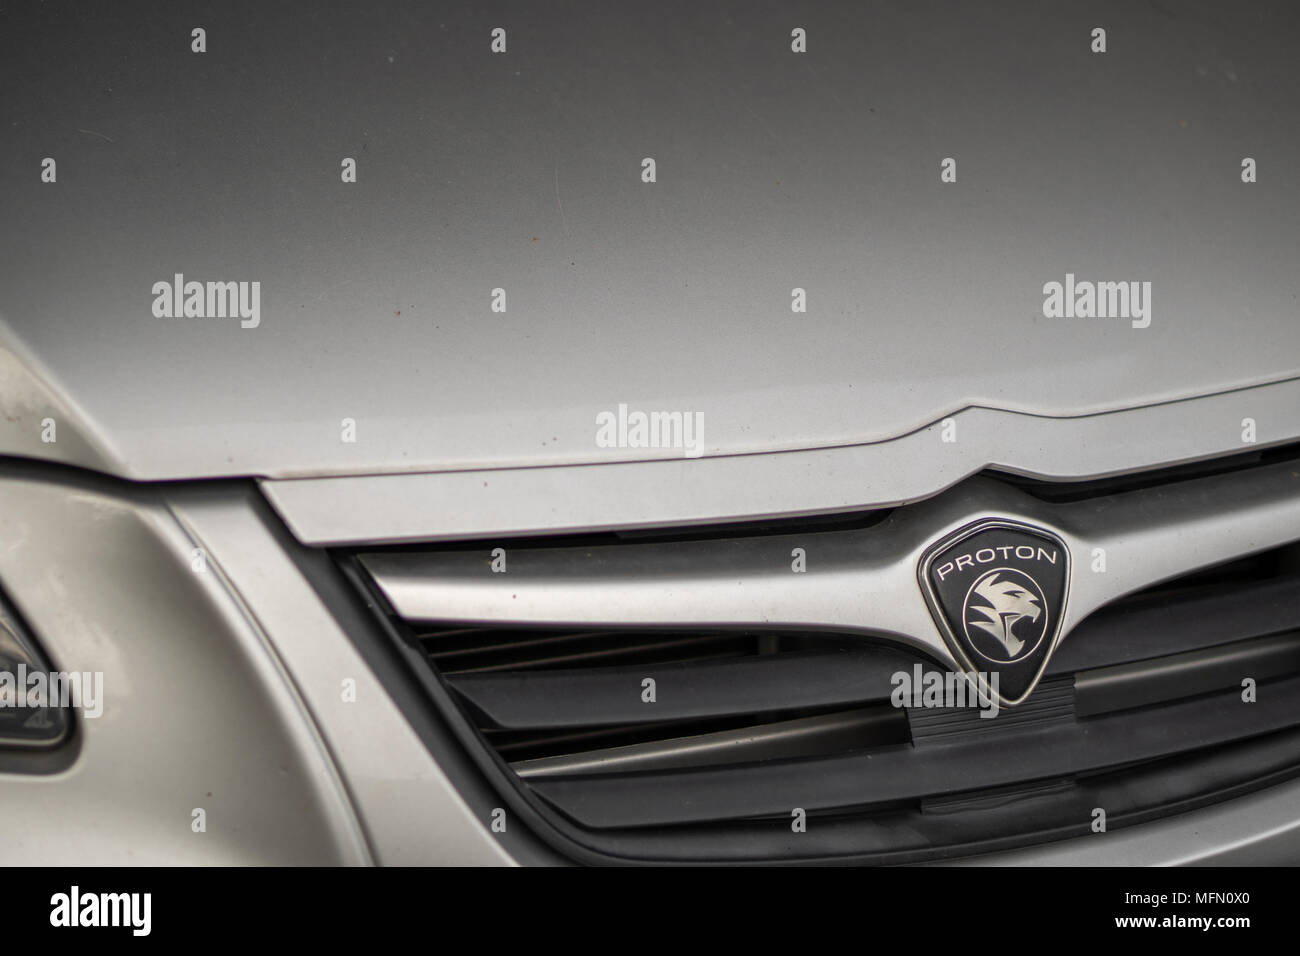 Proton car emblem and brand logo on front of car. Modern & high technology car build by one of the Malaysian famous car manufacture. Stock Photo